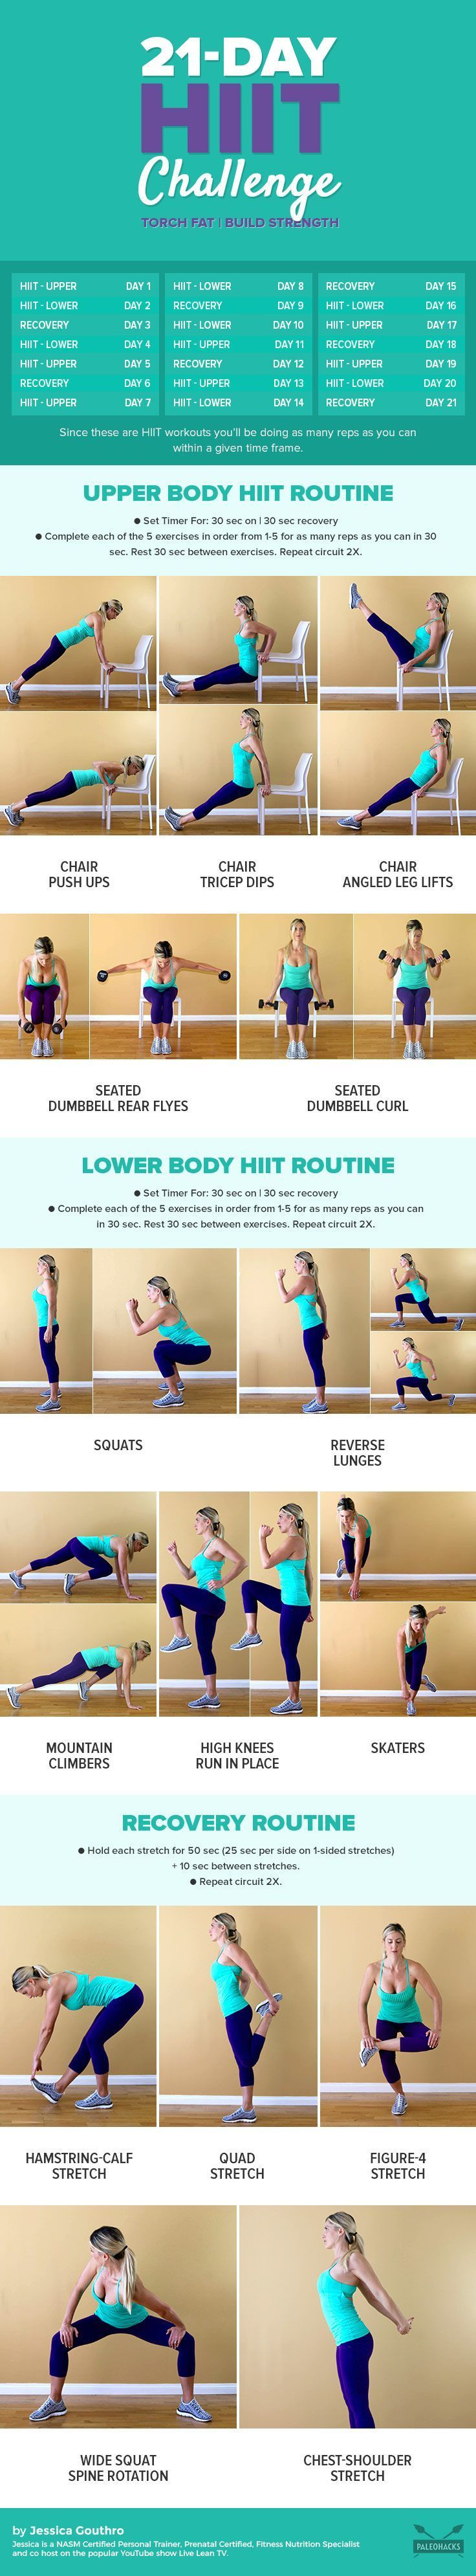 The saying goes that it takes 21 days to build a habit. So kick start your year with this 21-day HIIT challenge to get your heart pumping and torch fat! Get the workout here: http://paleo.co/21dayHIIT